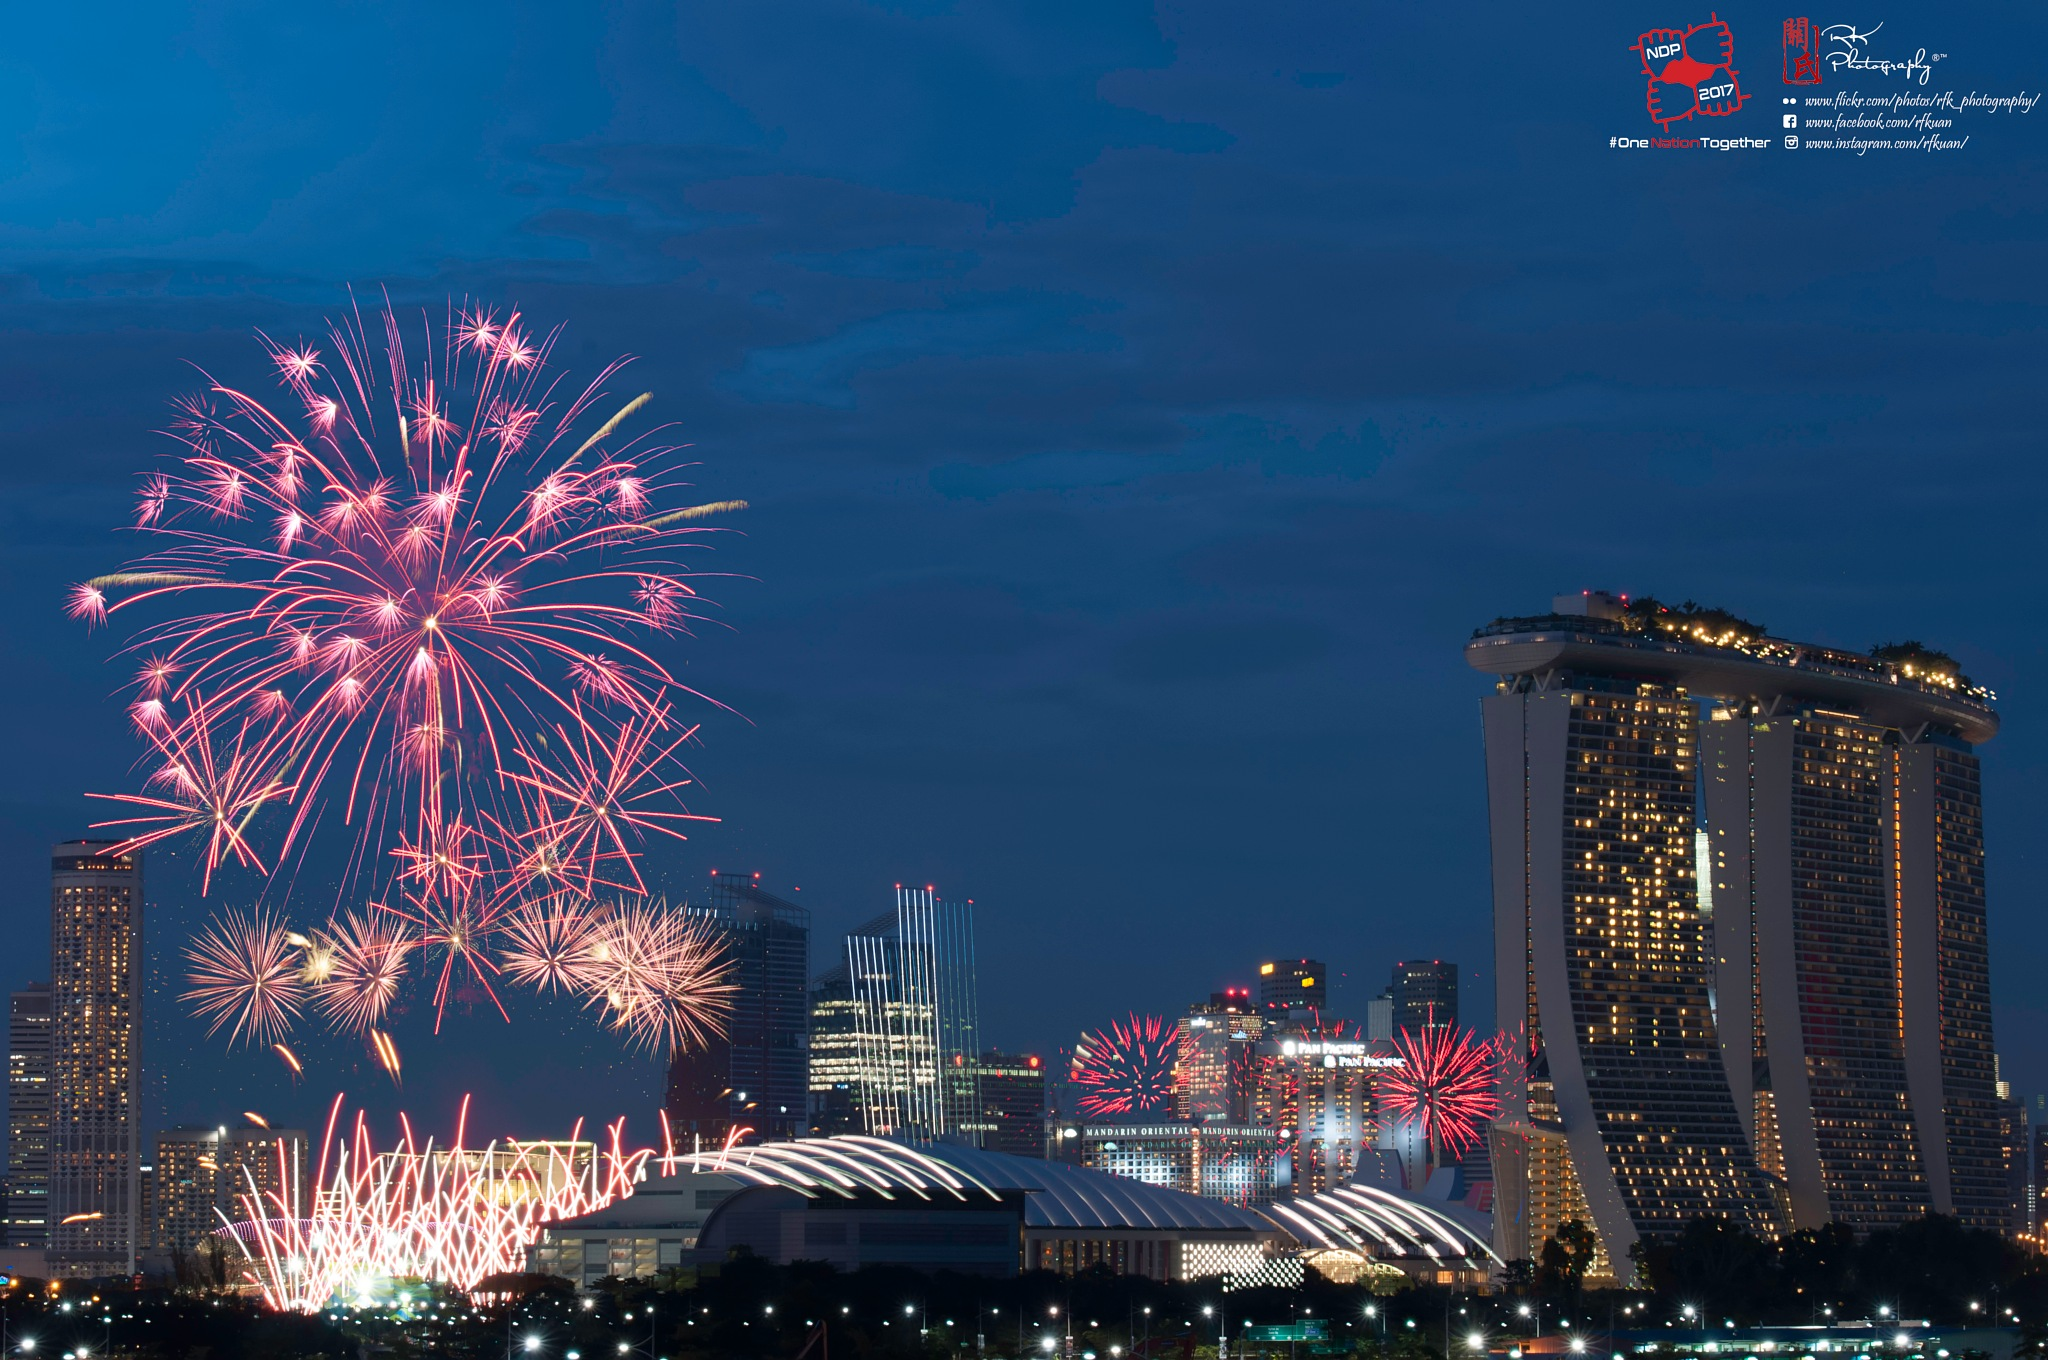 Singapore 52th National Day Fireworks by Ricky Kuan